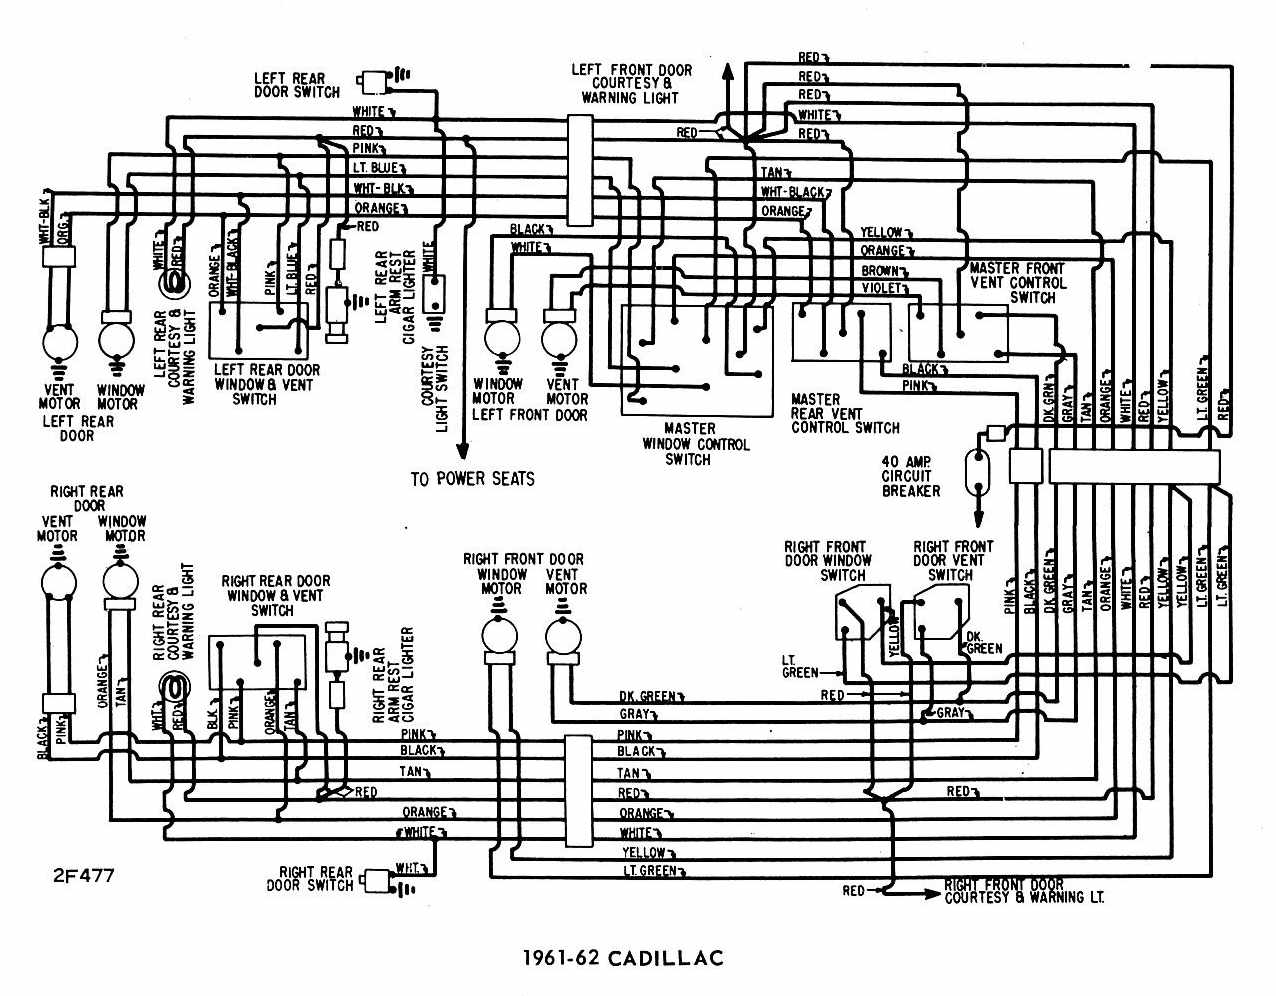 Cadillac Car Manuals Wiring Diagrams Pdf Fault Codes 1999 Saab 9 3 Stereo Diagram Download